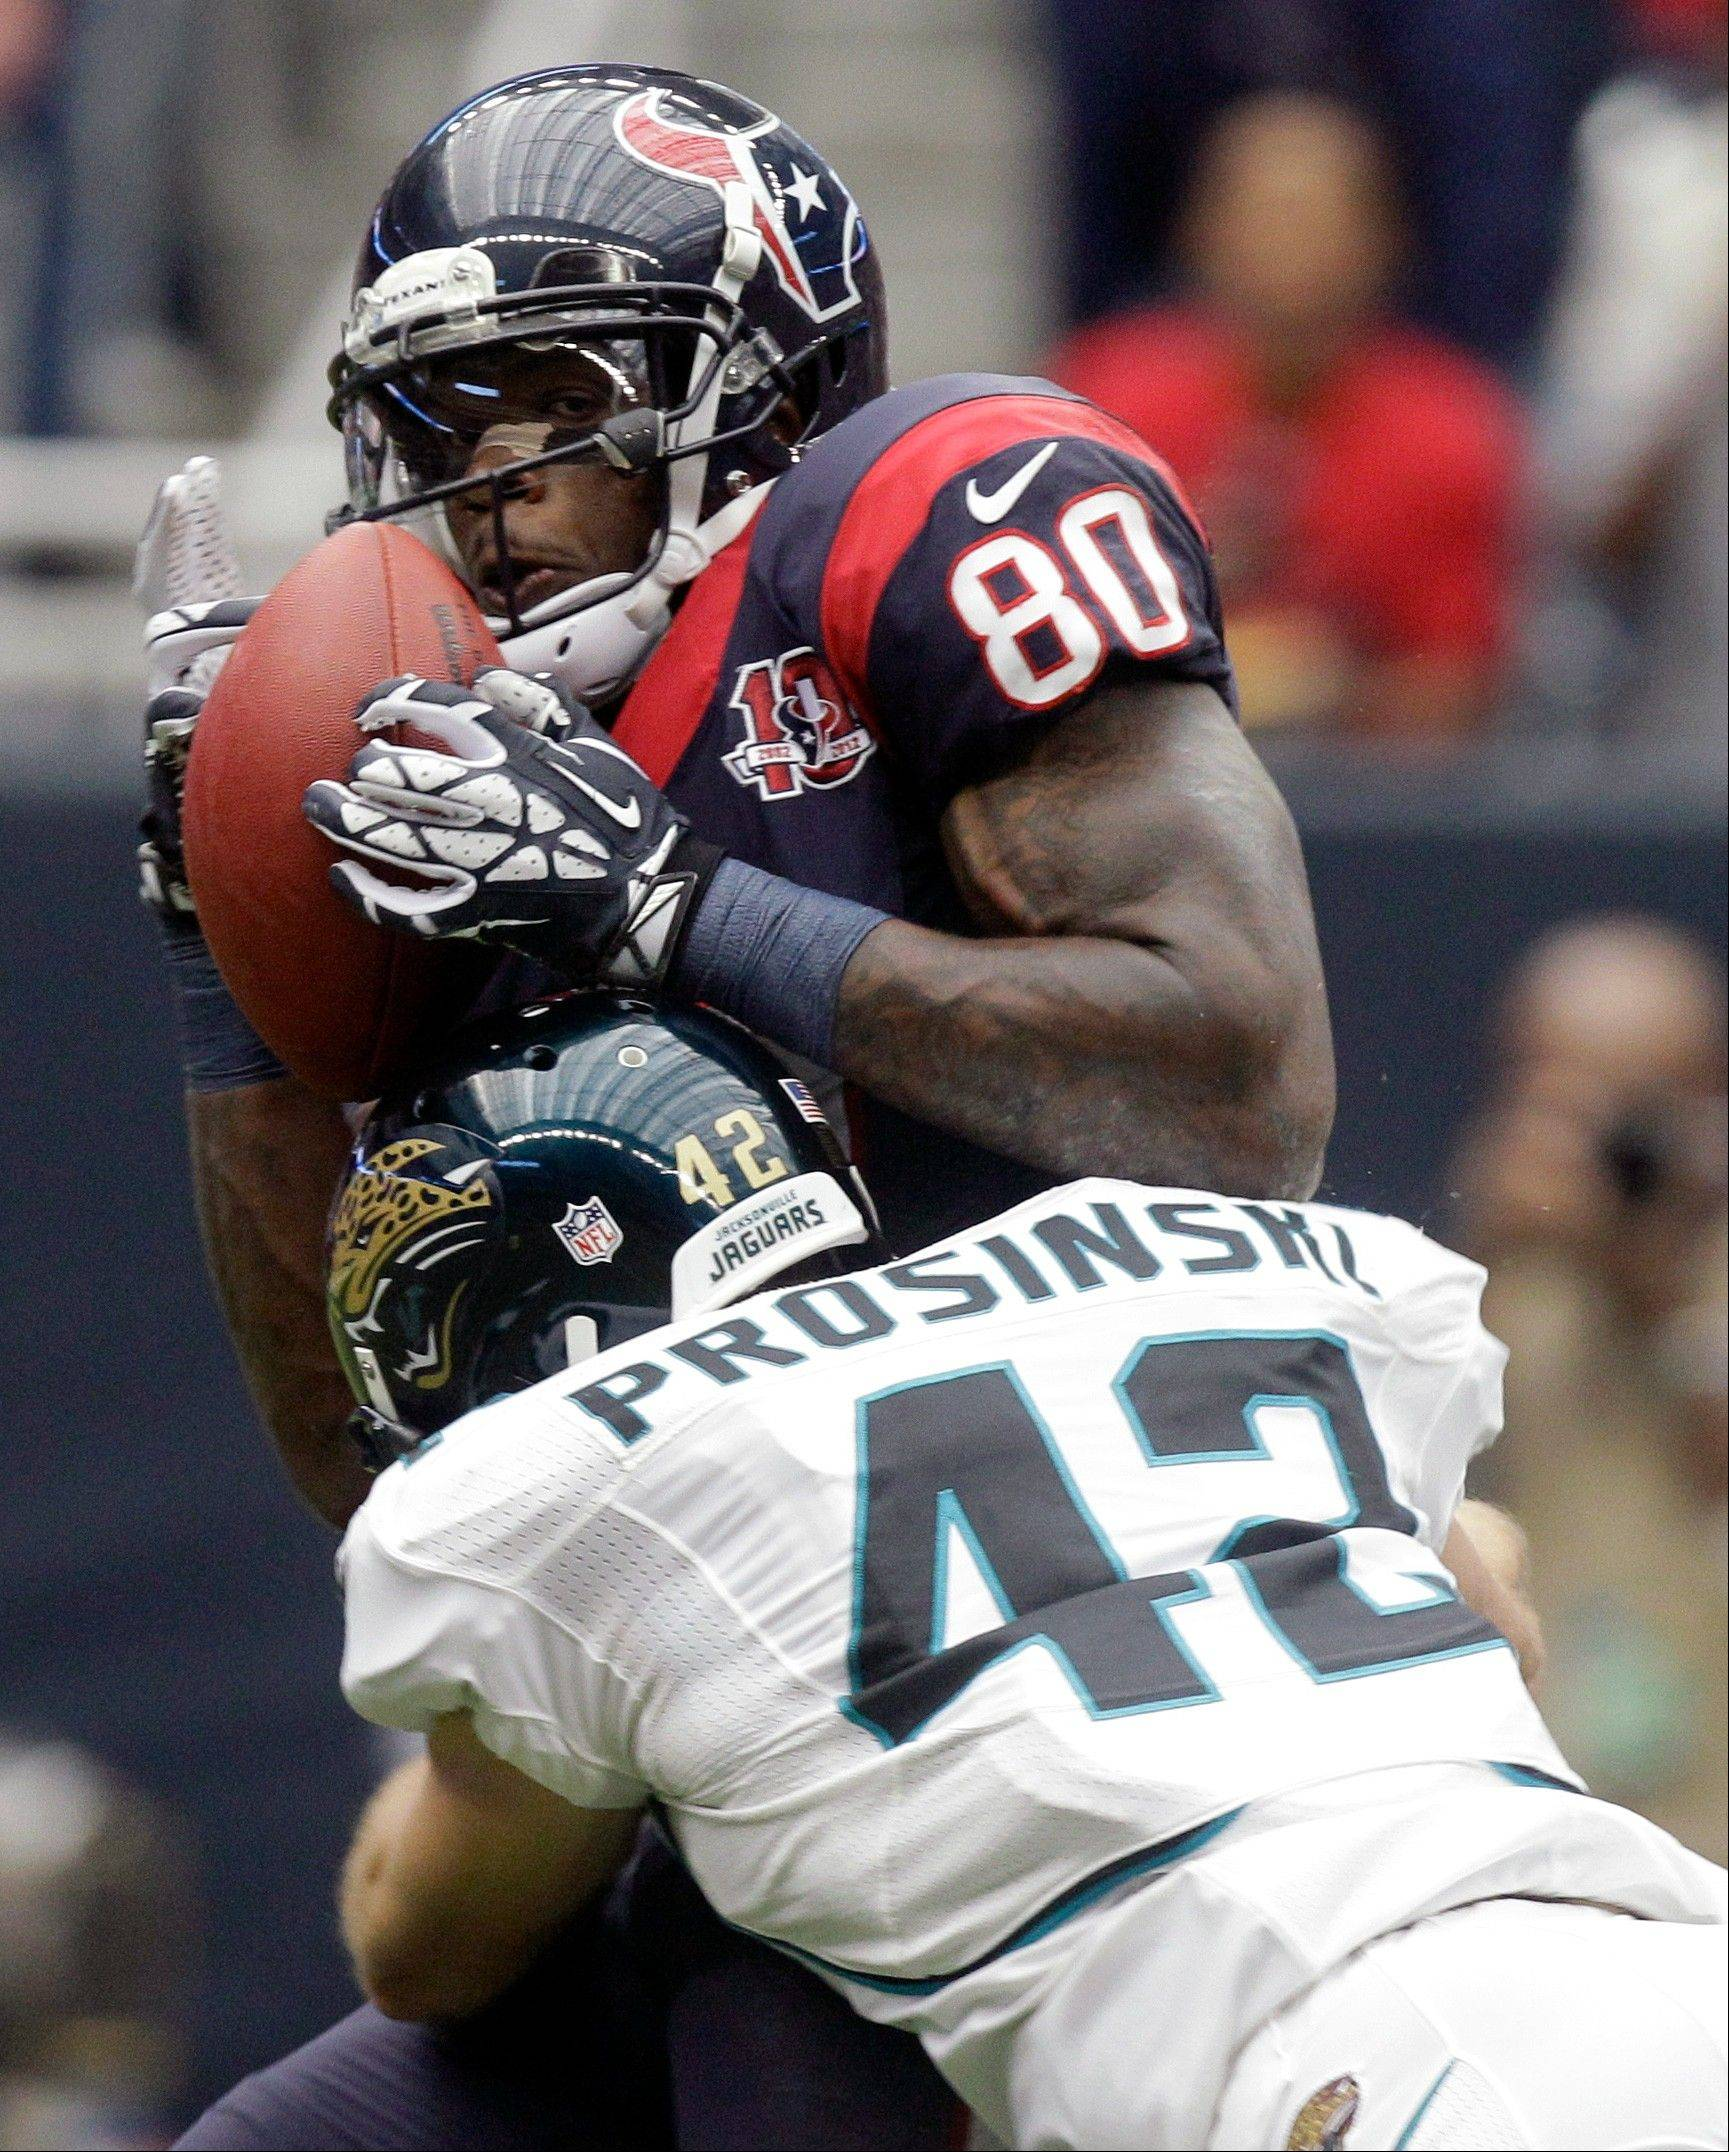 Texans WR Andre Johnson is banged up and facing a tenacious Seahawks defense in Week 4.